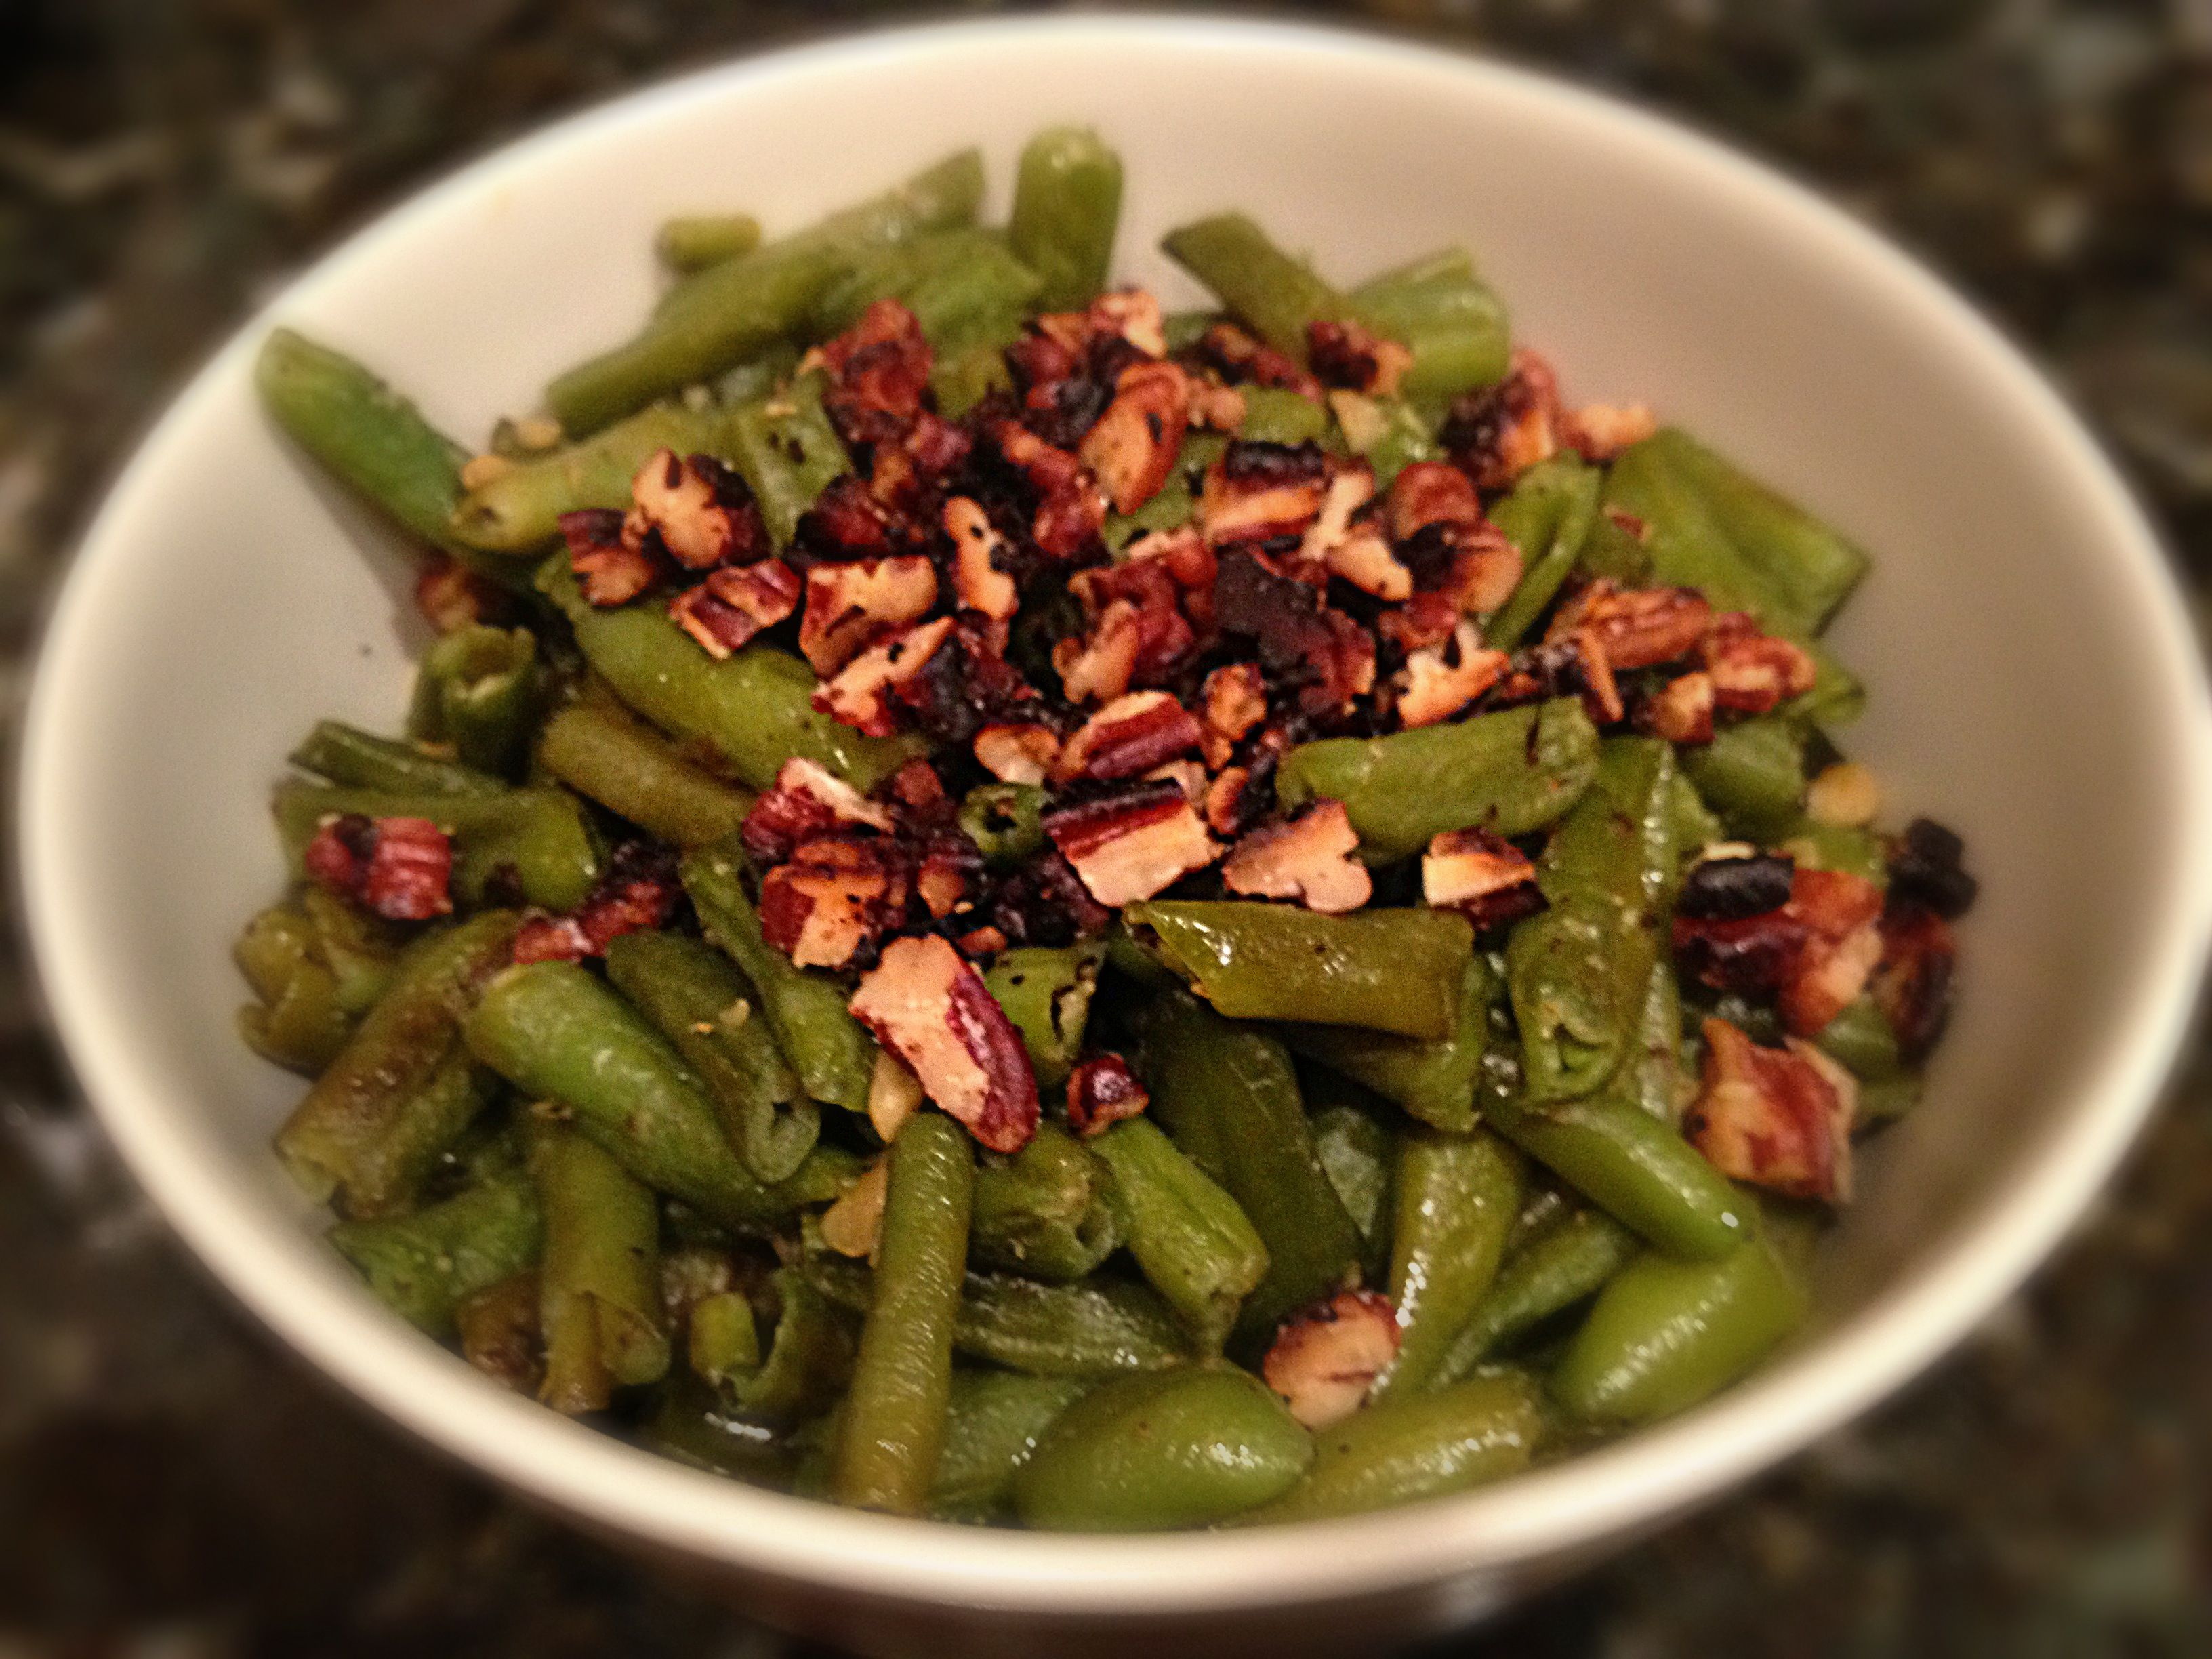 Lemon garlic green beans with toasted pecans